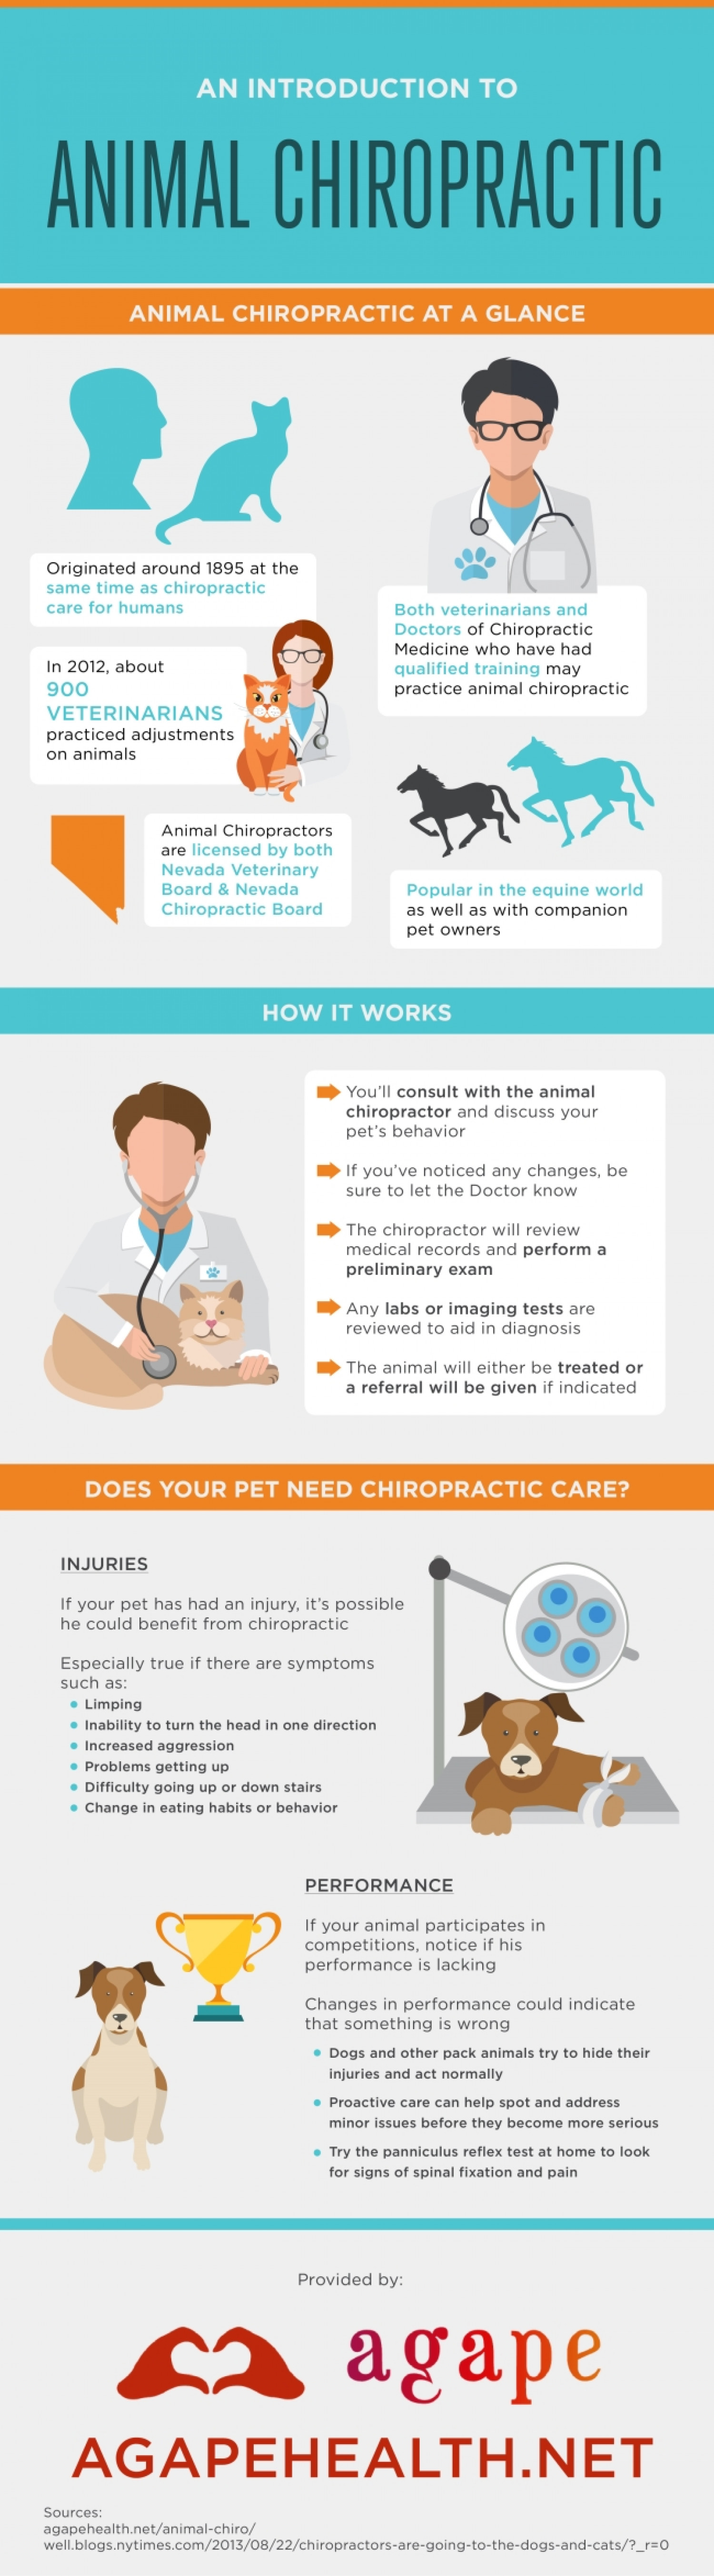 An Introduction to Animal Chiropractic Infographic